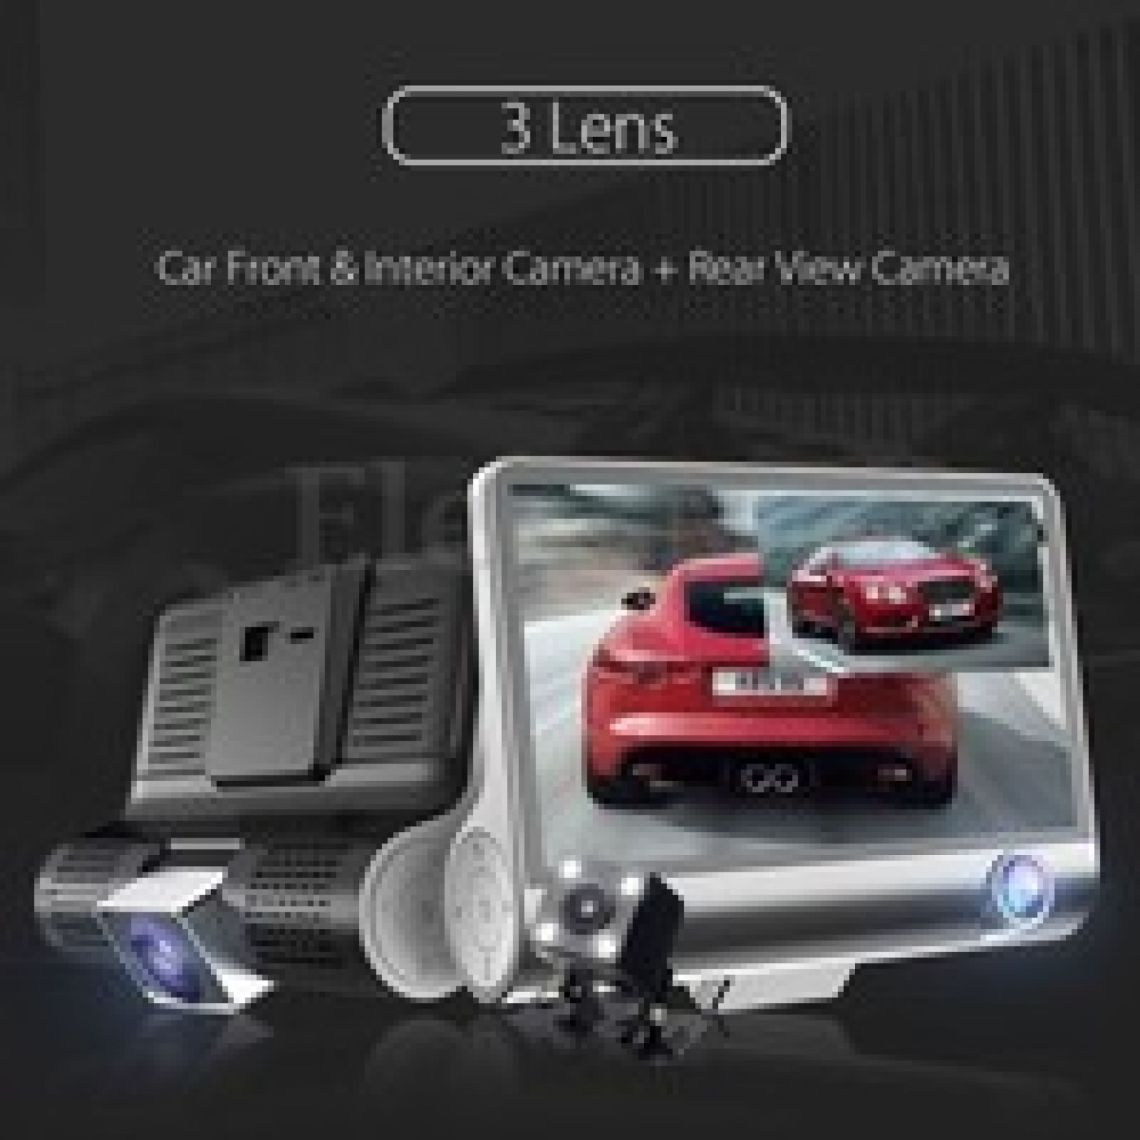 "wish | Car Digital Video Recorder 4"" Car Dash Cam 3 Lens Car Dash Camera 4-inch Display HD 1080P Car DVR Video Recorder 170 Degree Wide Angle with Waterproof Rear Camera, G-Sensor Motion Detection Loop Recording"